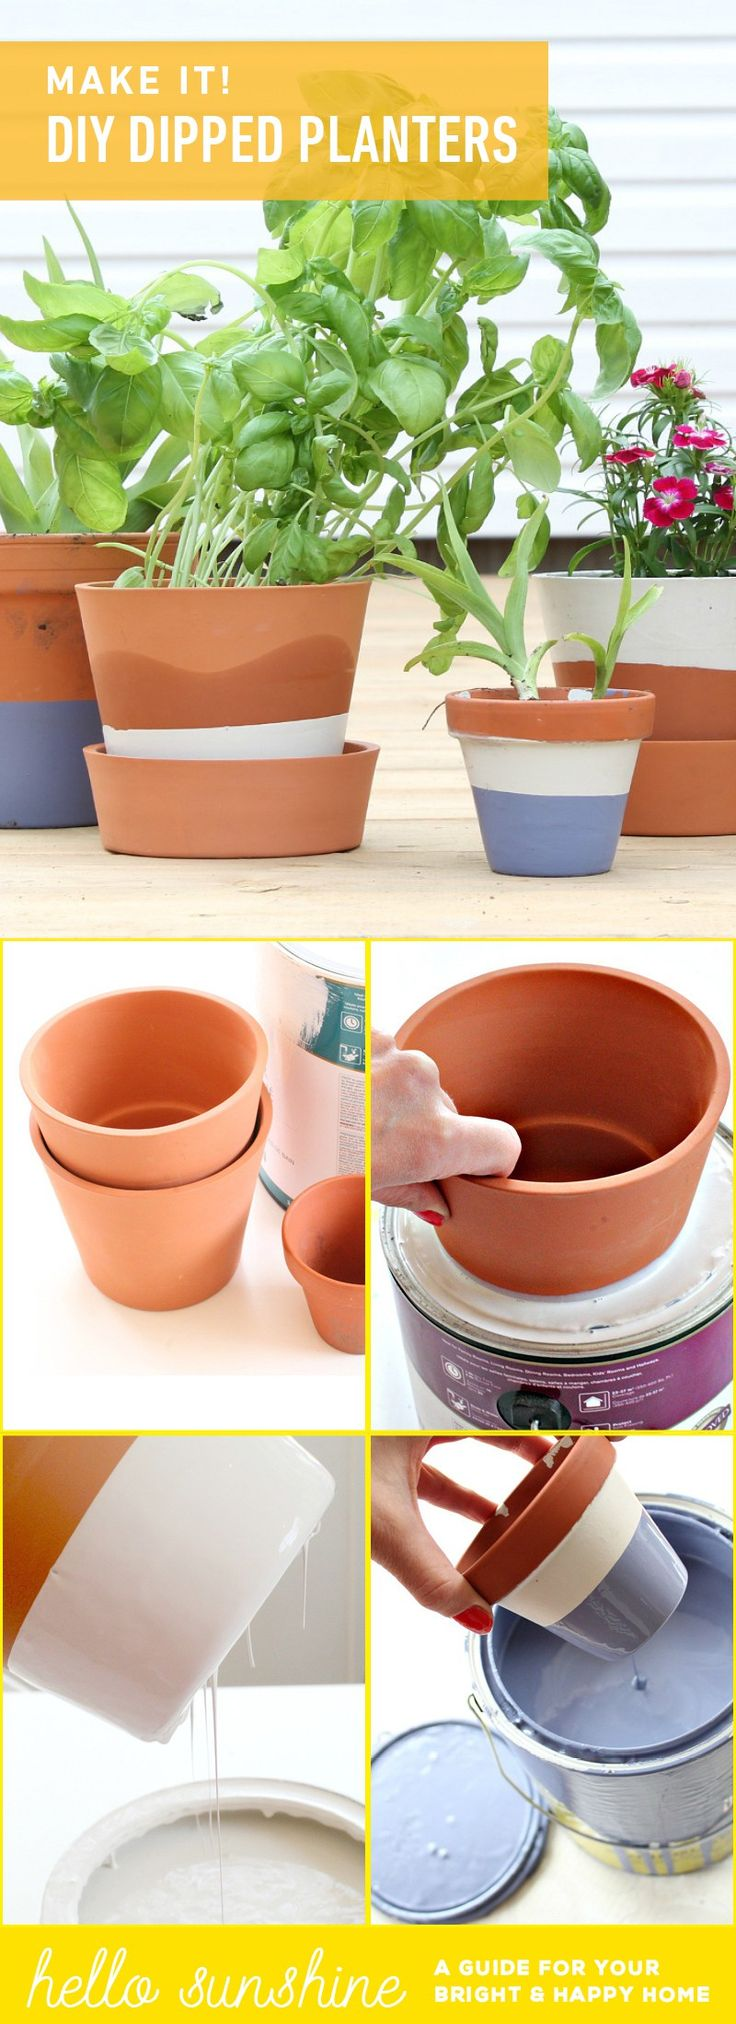 DIY Dip Dyed terracotta planters. You don't need to be an artist to update your old planters- this trick is so easy even a toddler can pull it off!